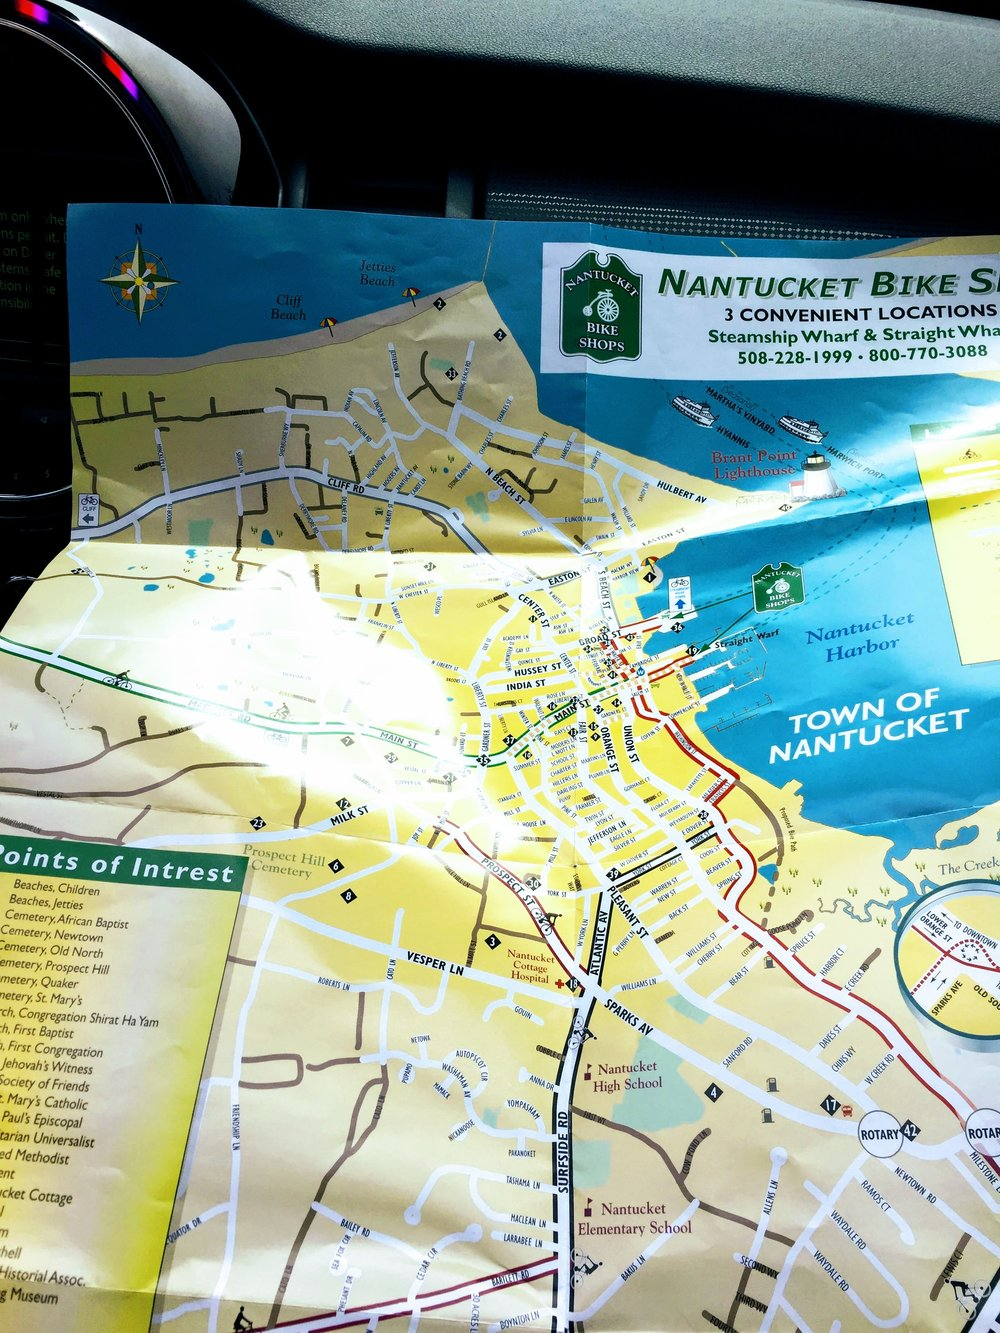 Nantucket Bike Map